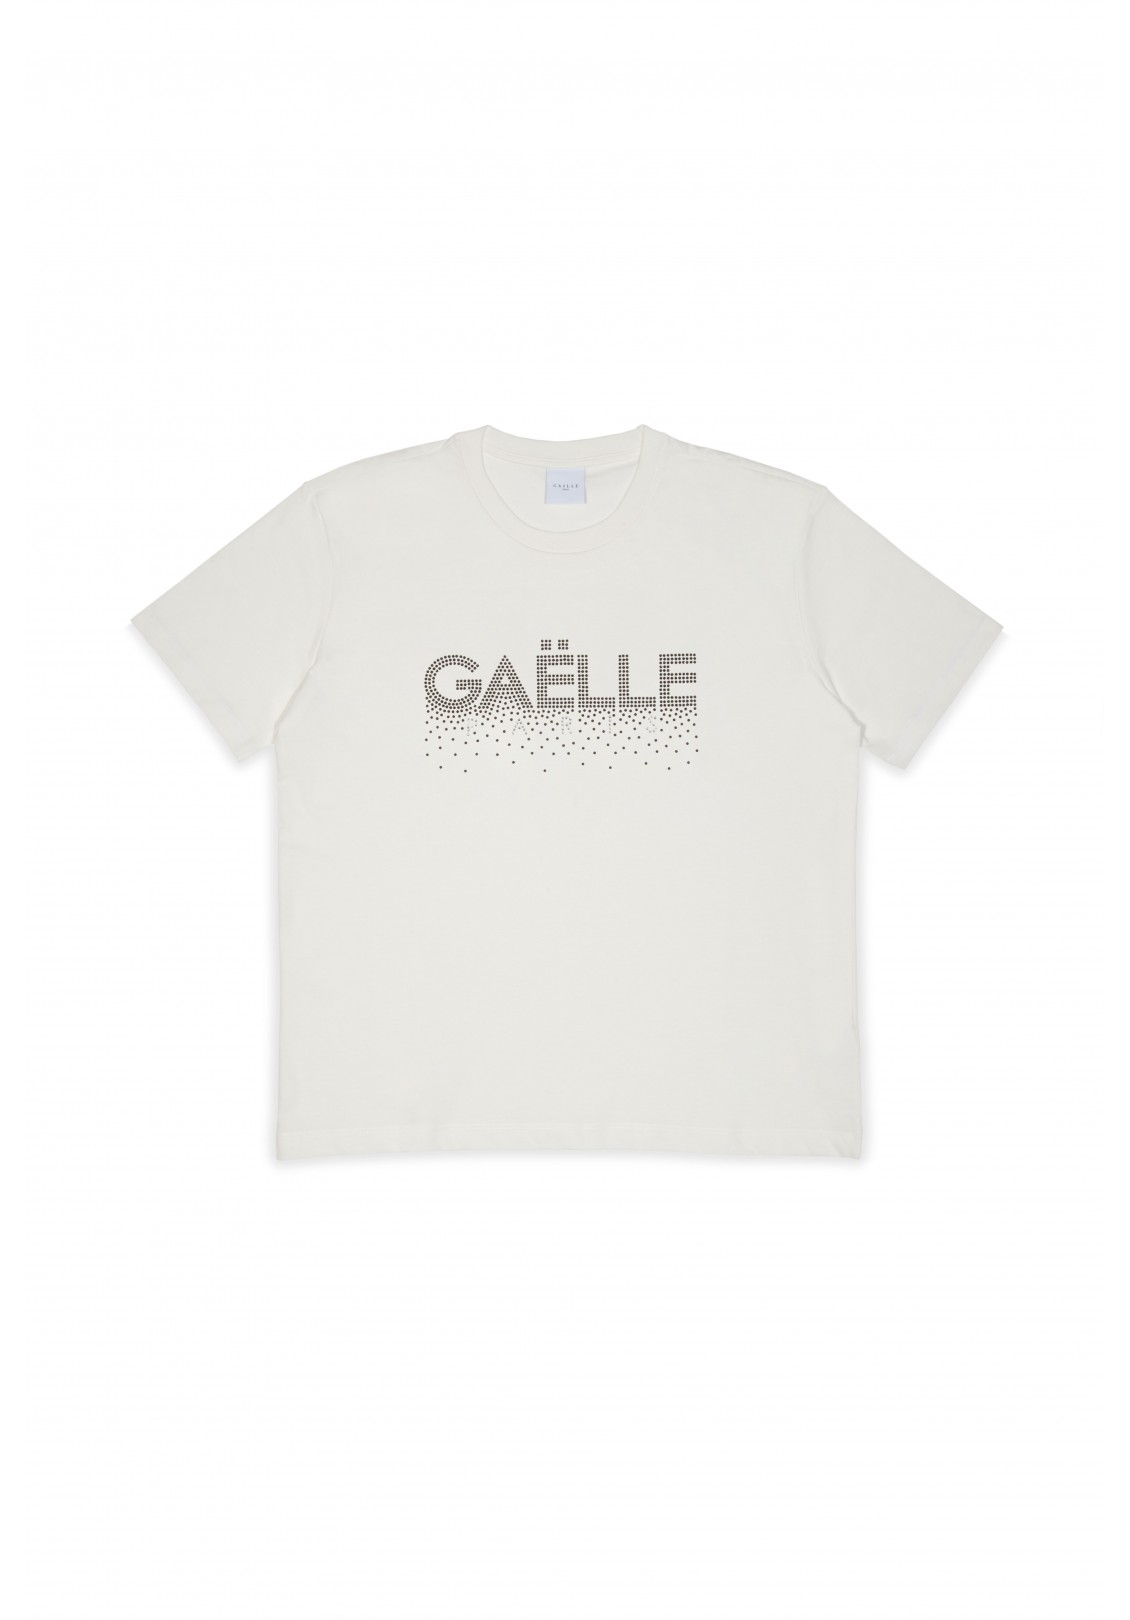 T-SHIRT - GBD4714 - GAELLE PARIS